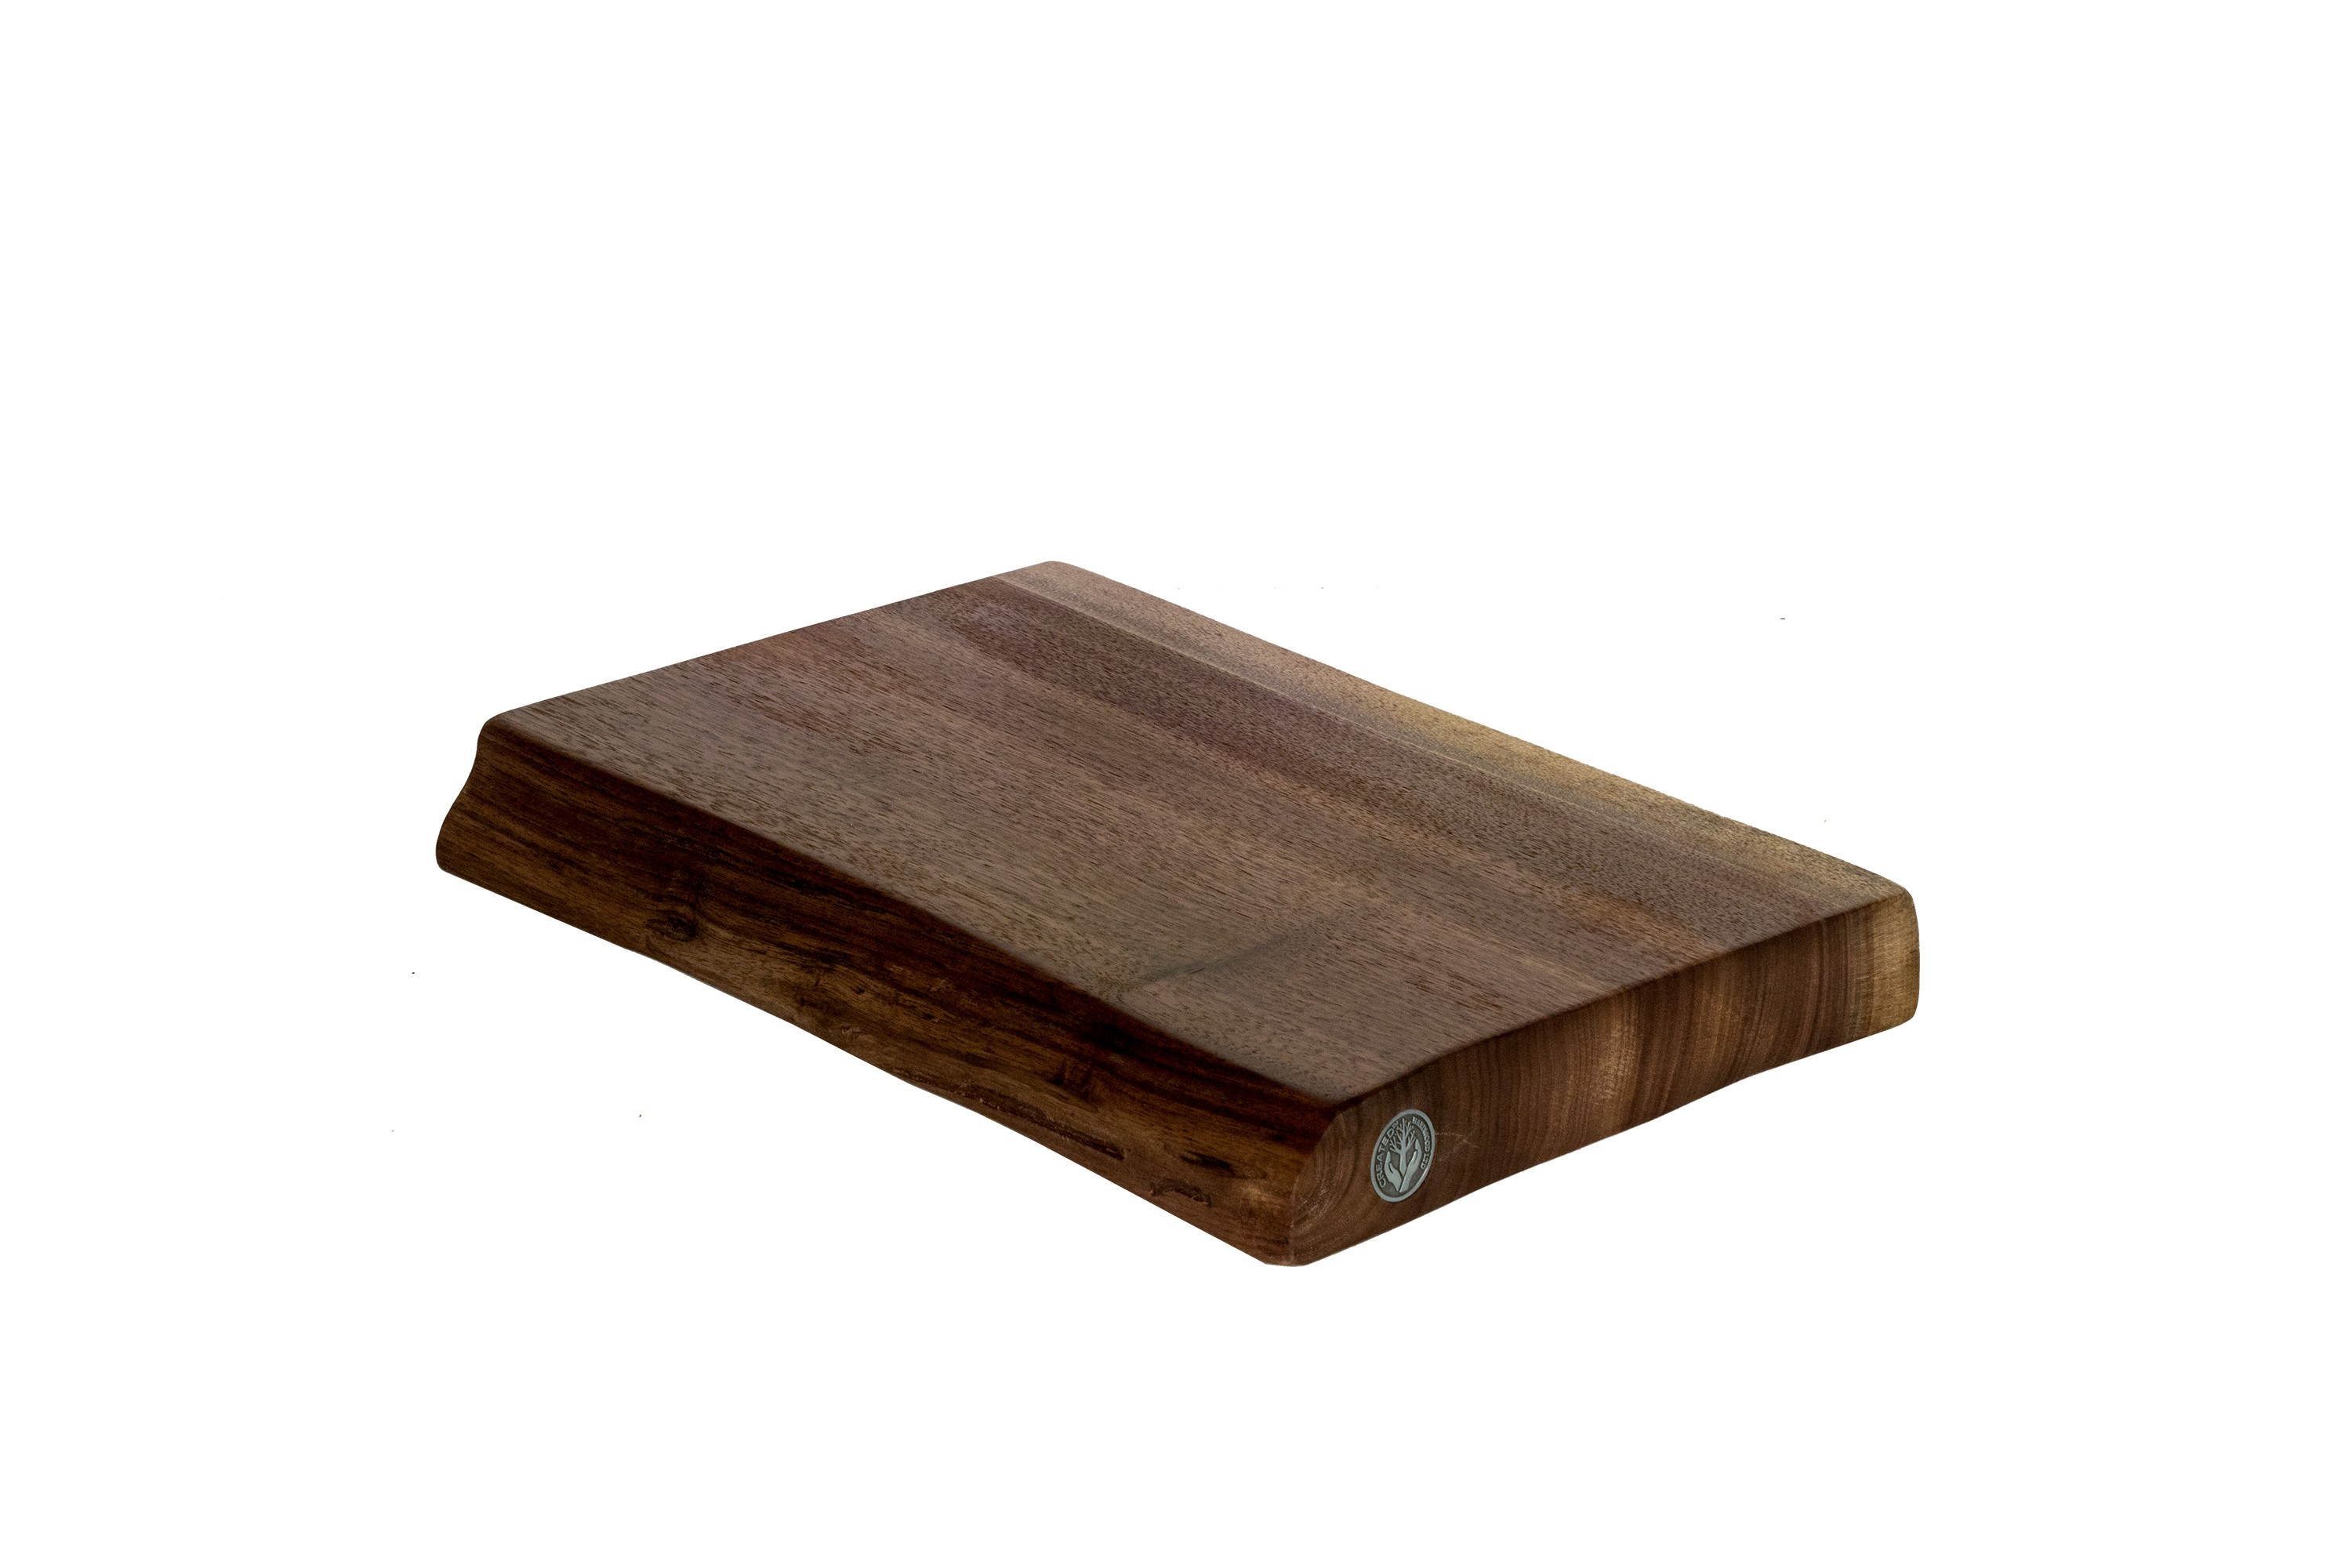 Live Edge Walnut Cutting Board #009 - 14.5